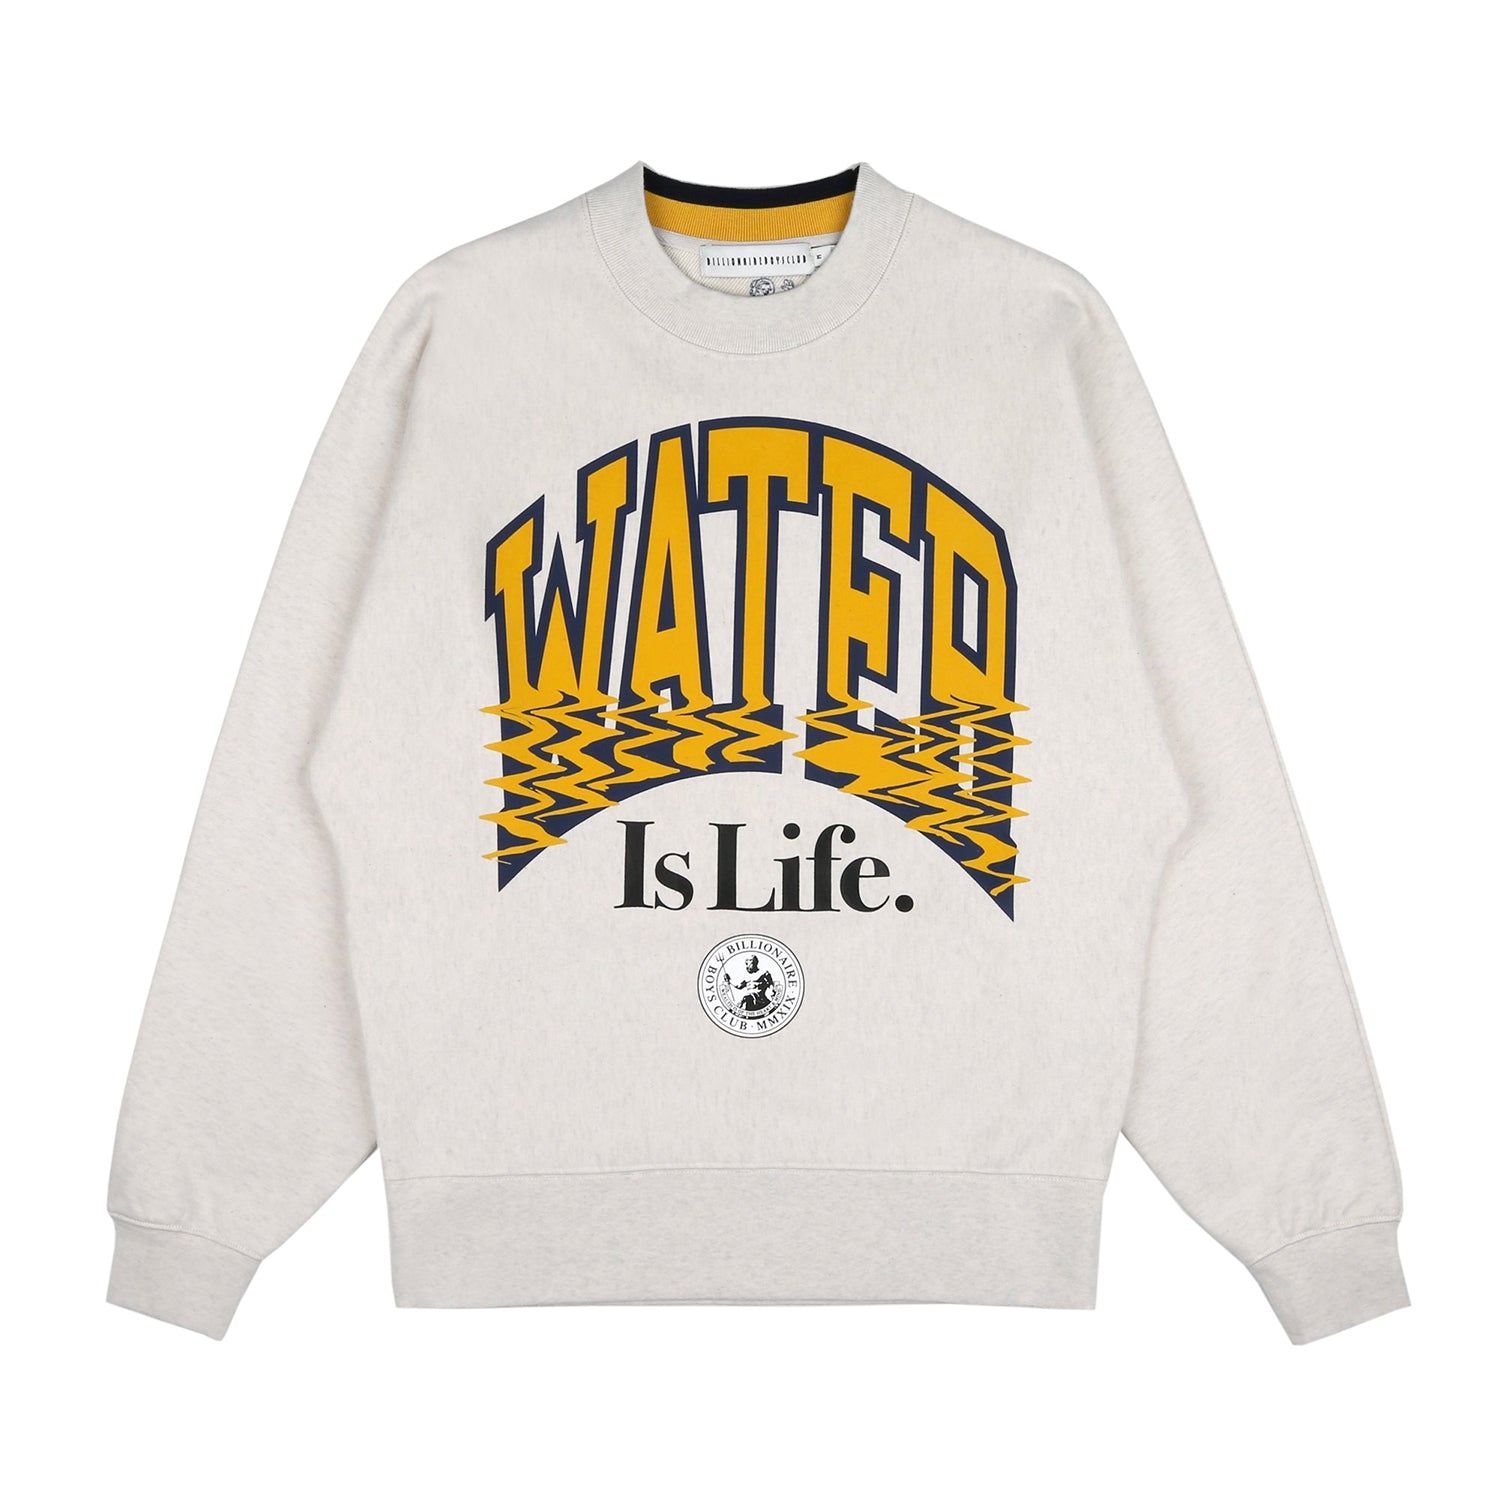 WATER IS LIFE COLLEGE CREW